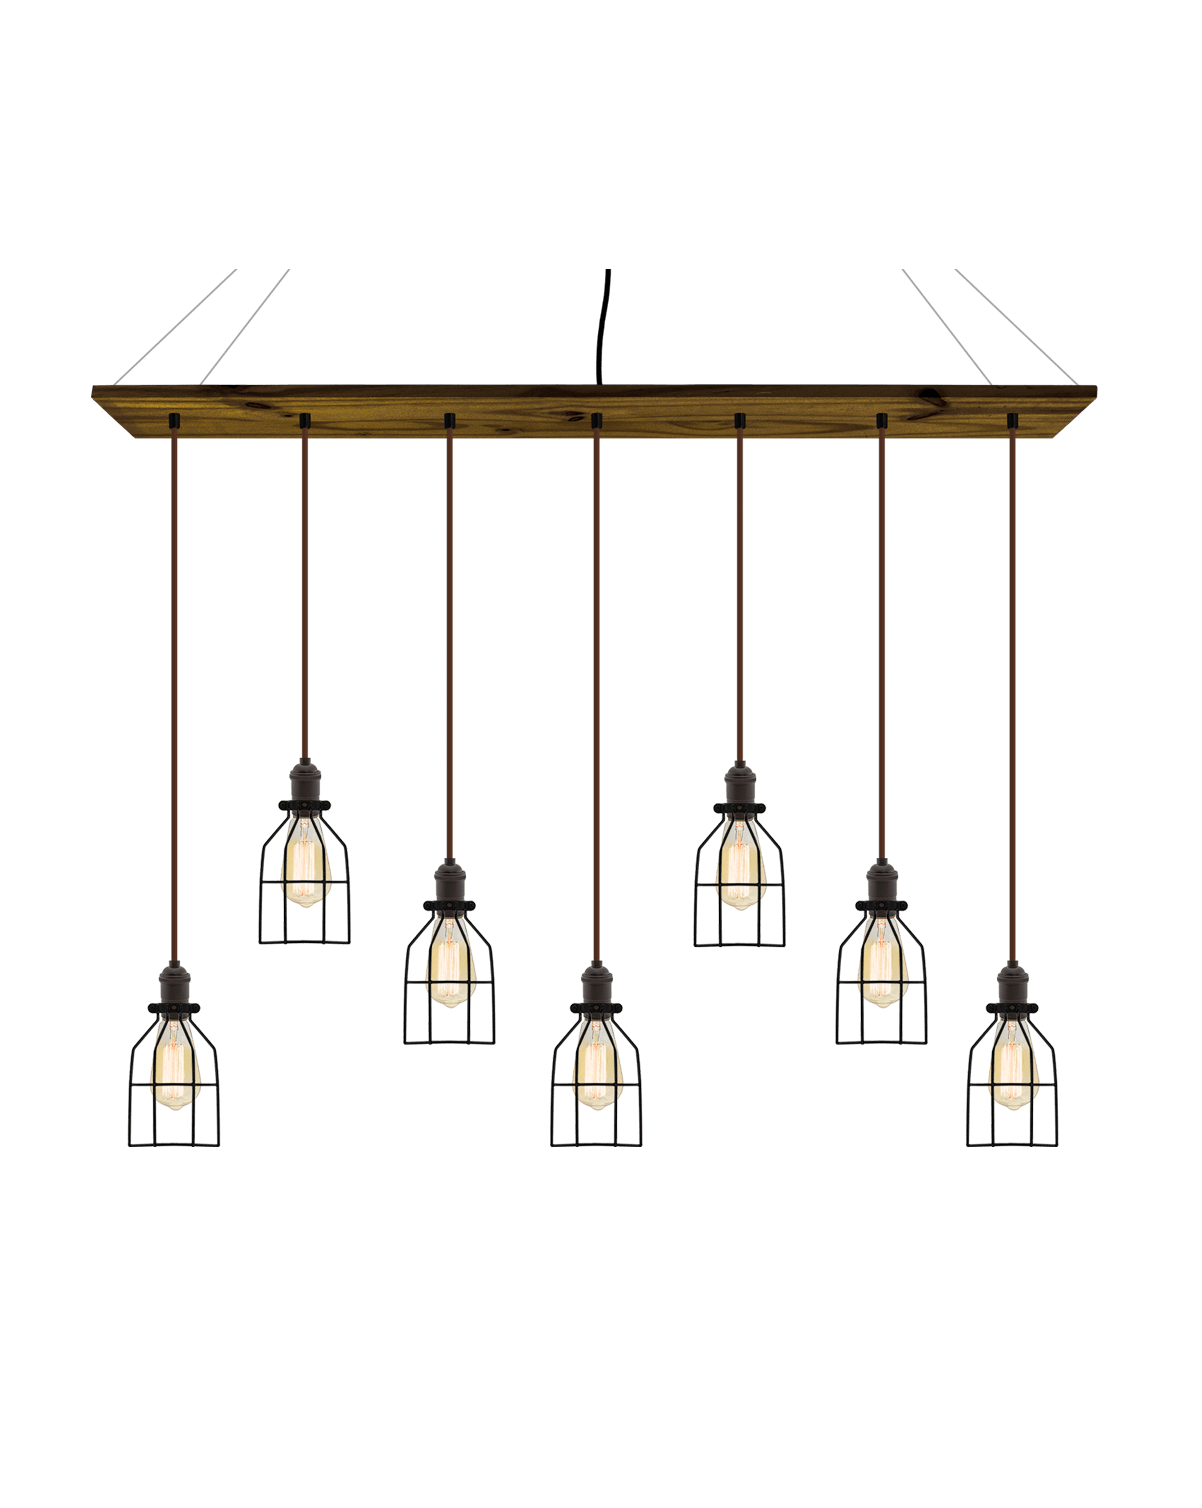 "47"" x 9"" Wood Chandelier: Walnut, Brown, and Black Cages Hangout Lighting"